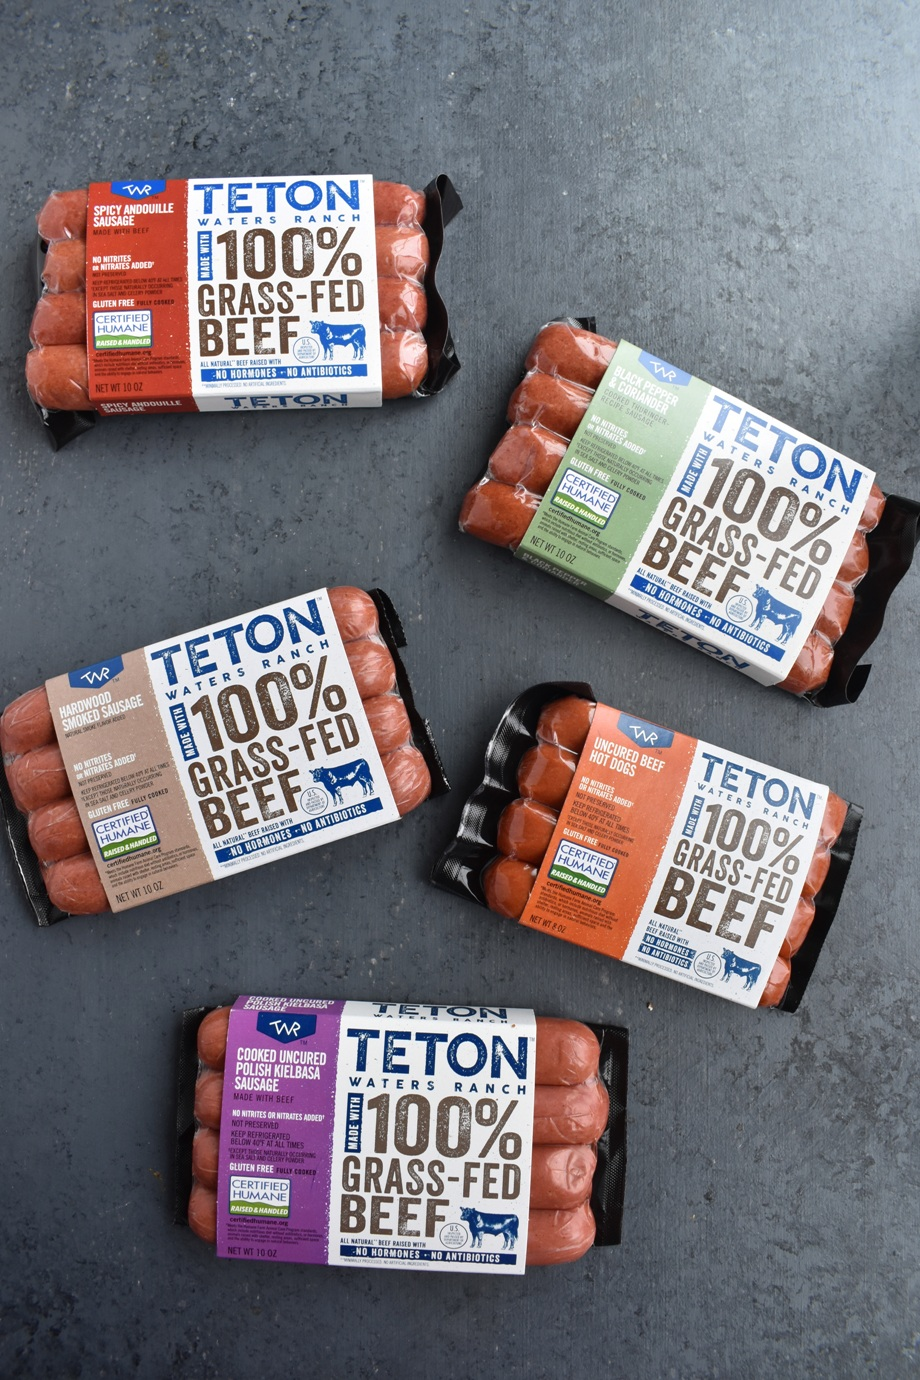 Teton Waters Ranch Sausage and Hot dogs